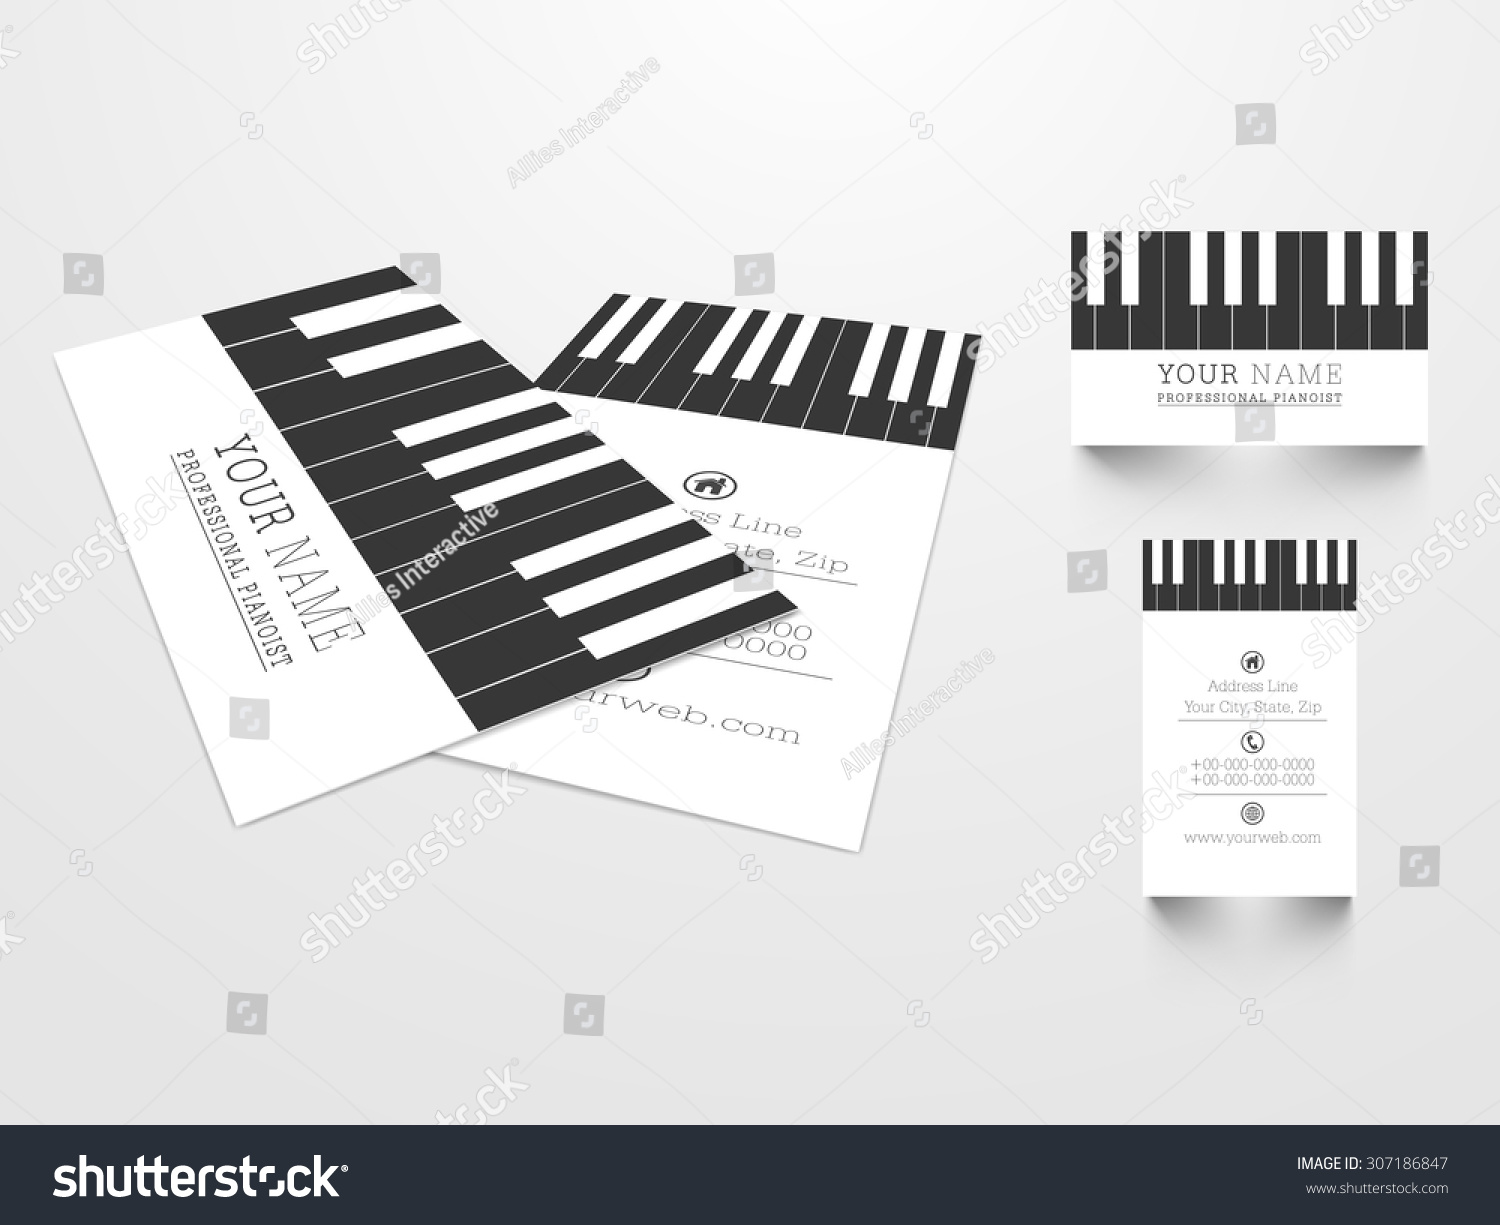 Creative business card set illustration piano stock vector creative business card set with illustration of piano keys for music concept magicingreecefo Images